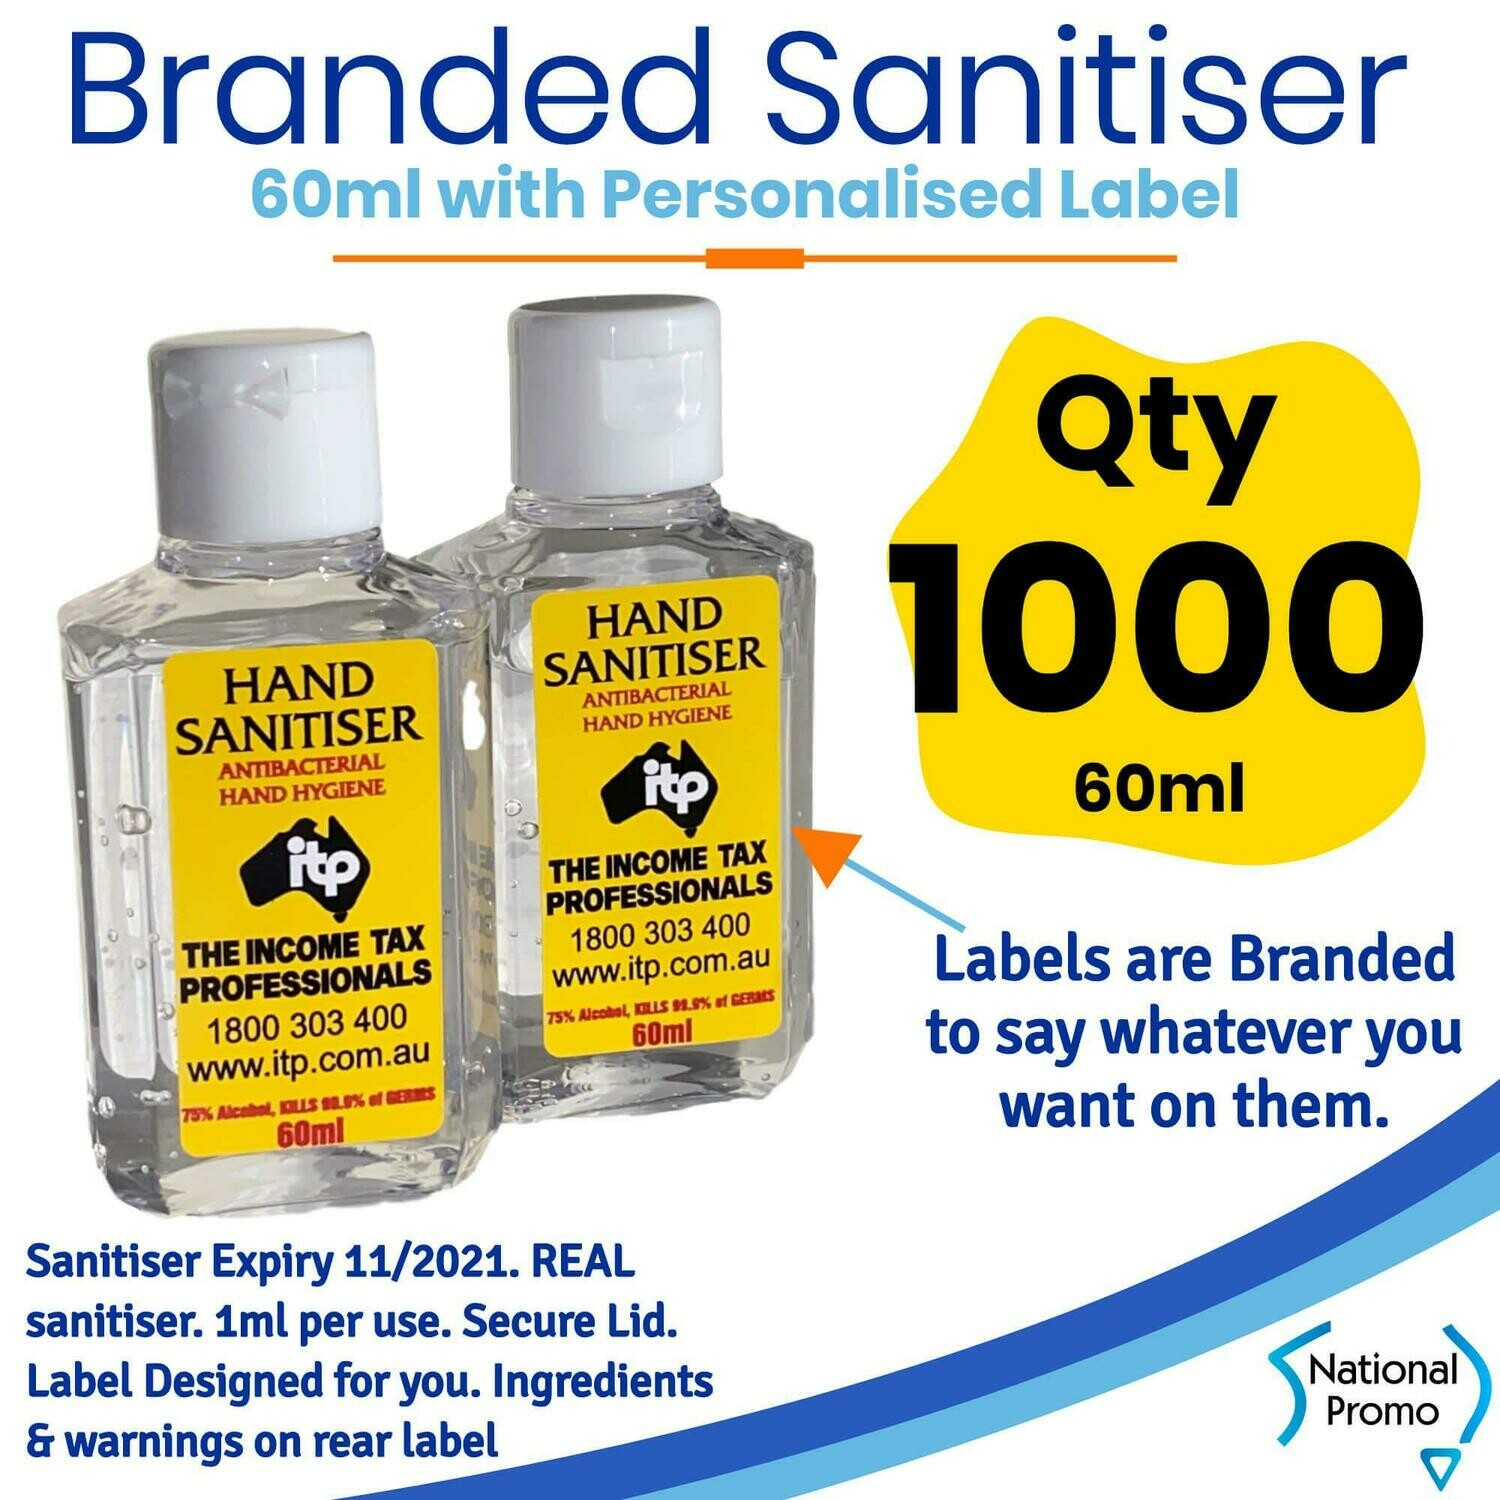 Qty of 1000 x 60ml Hand Sanitiser with Personalised Labels